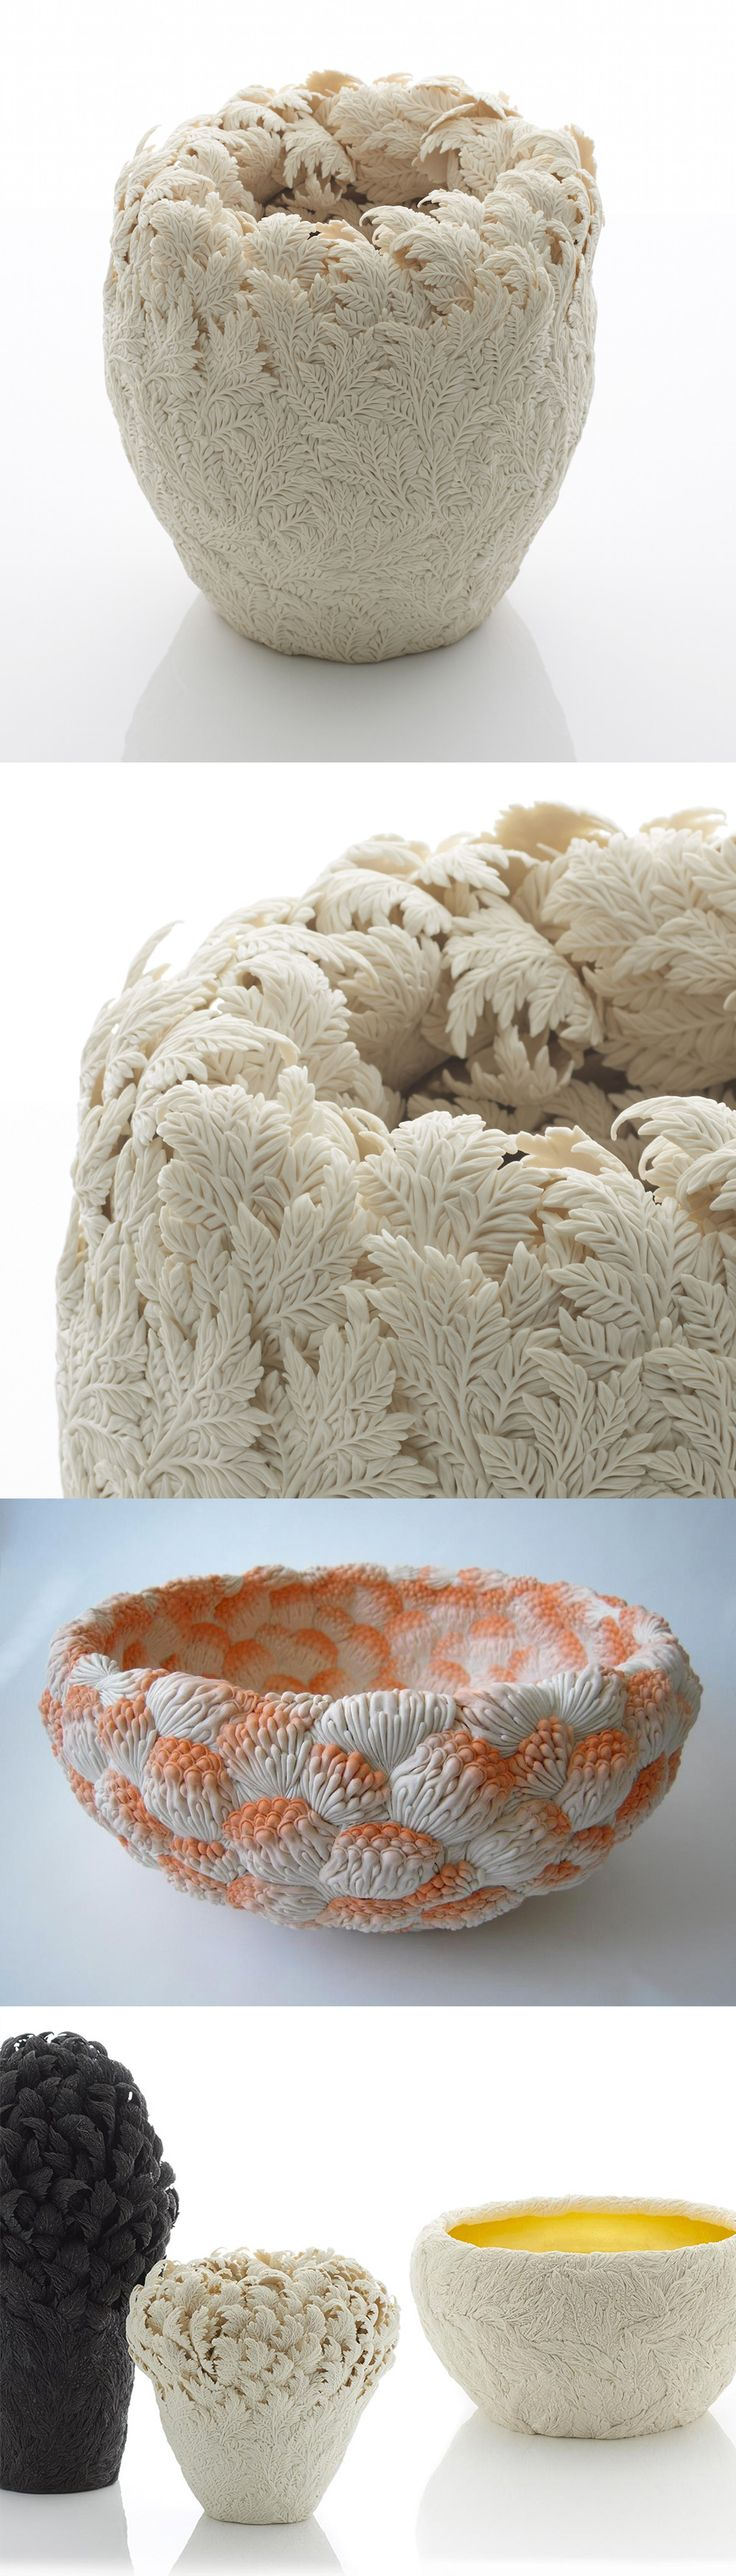 Porcelain Sculptures Inspired by English and Japanese Botanics by Hitomi Hosono